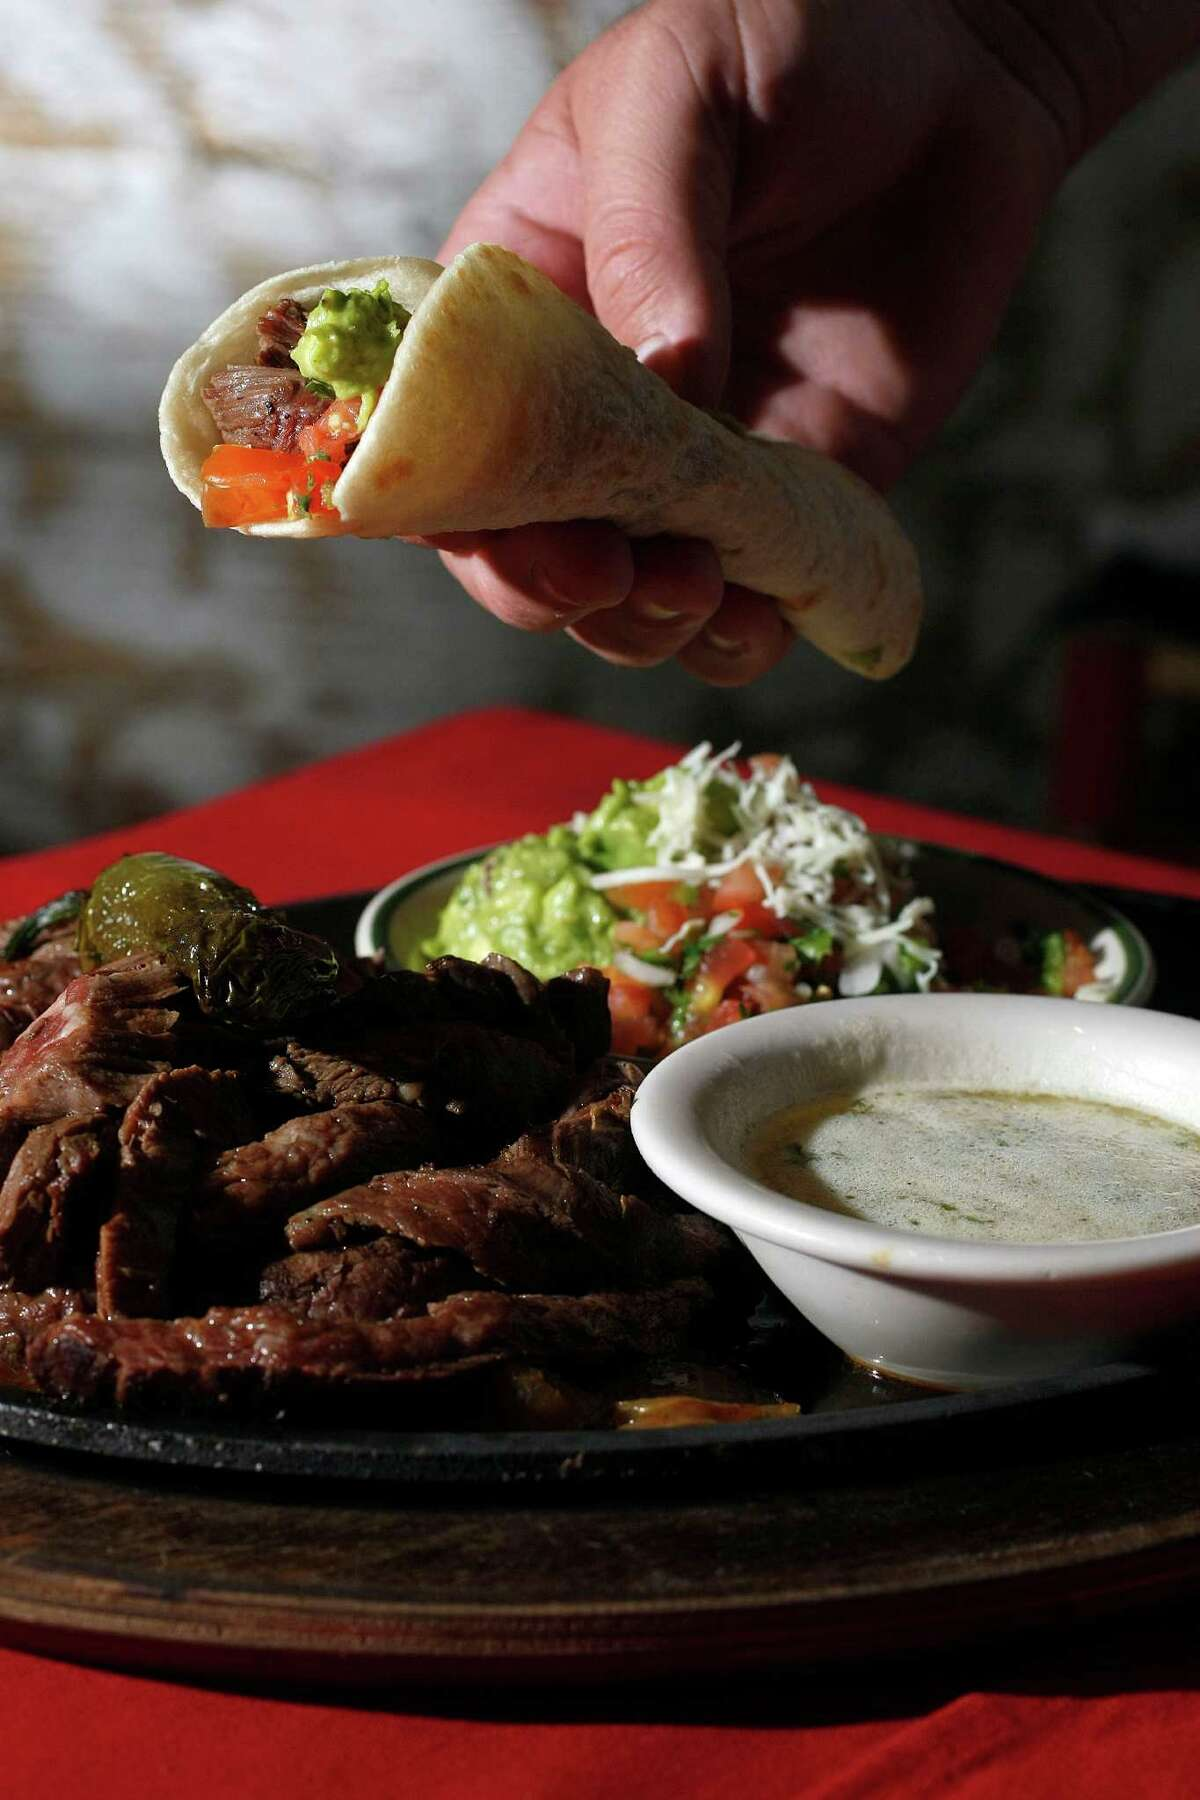 Beef fajitas, such as these at El Real, have become an American favorite.